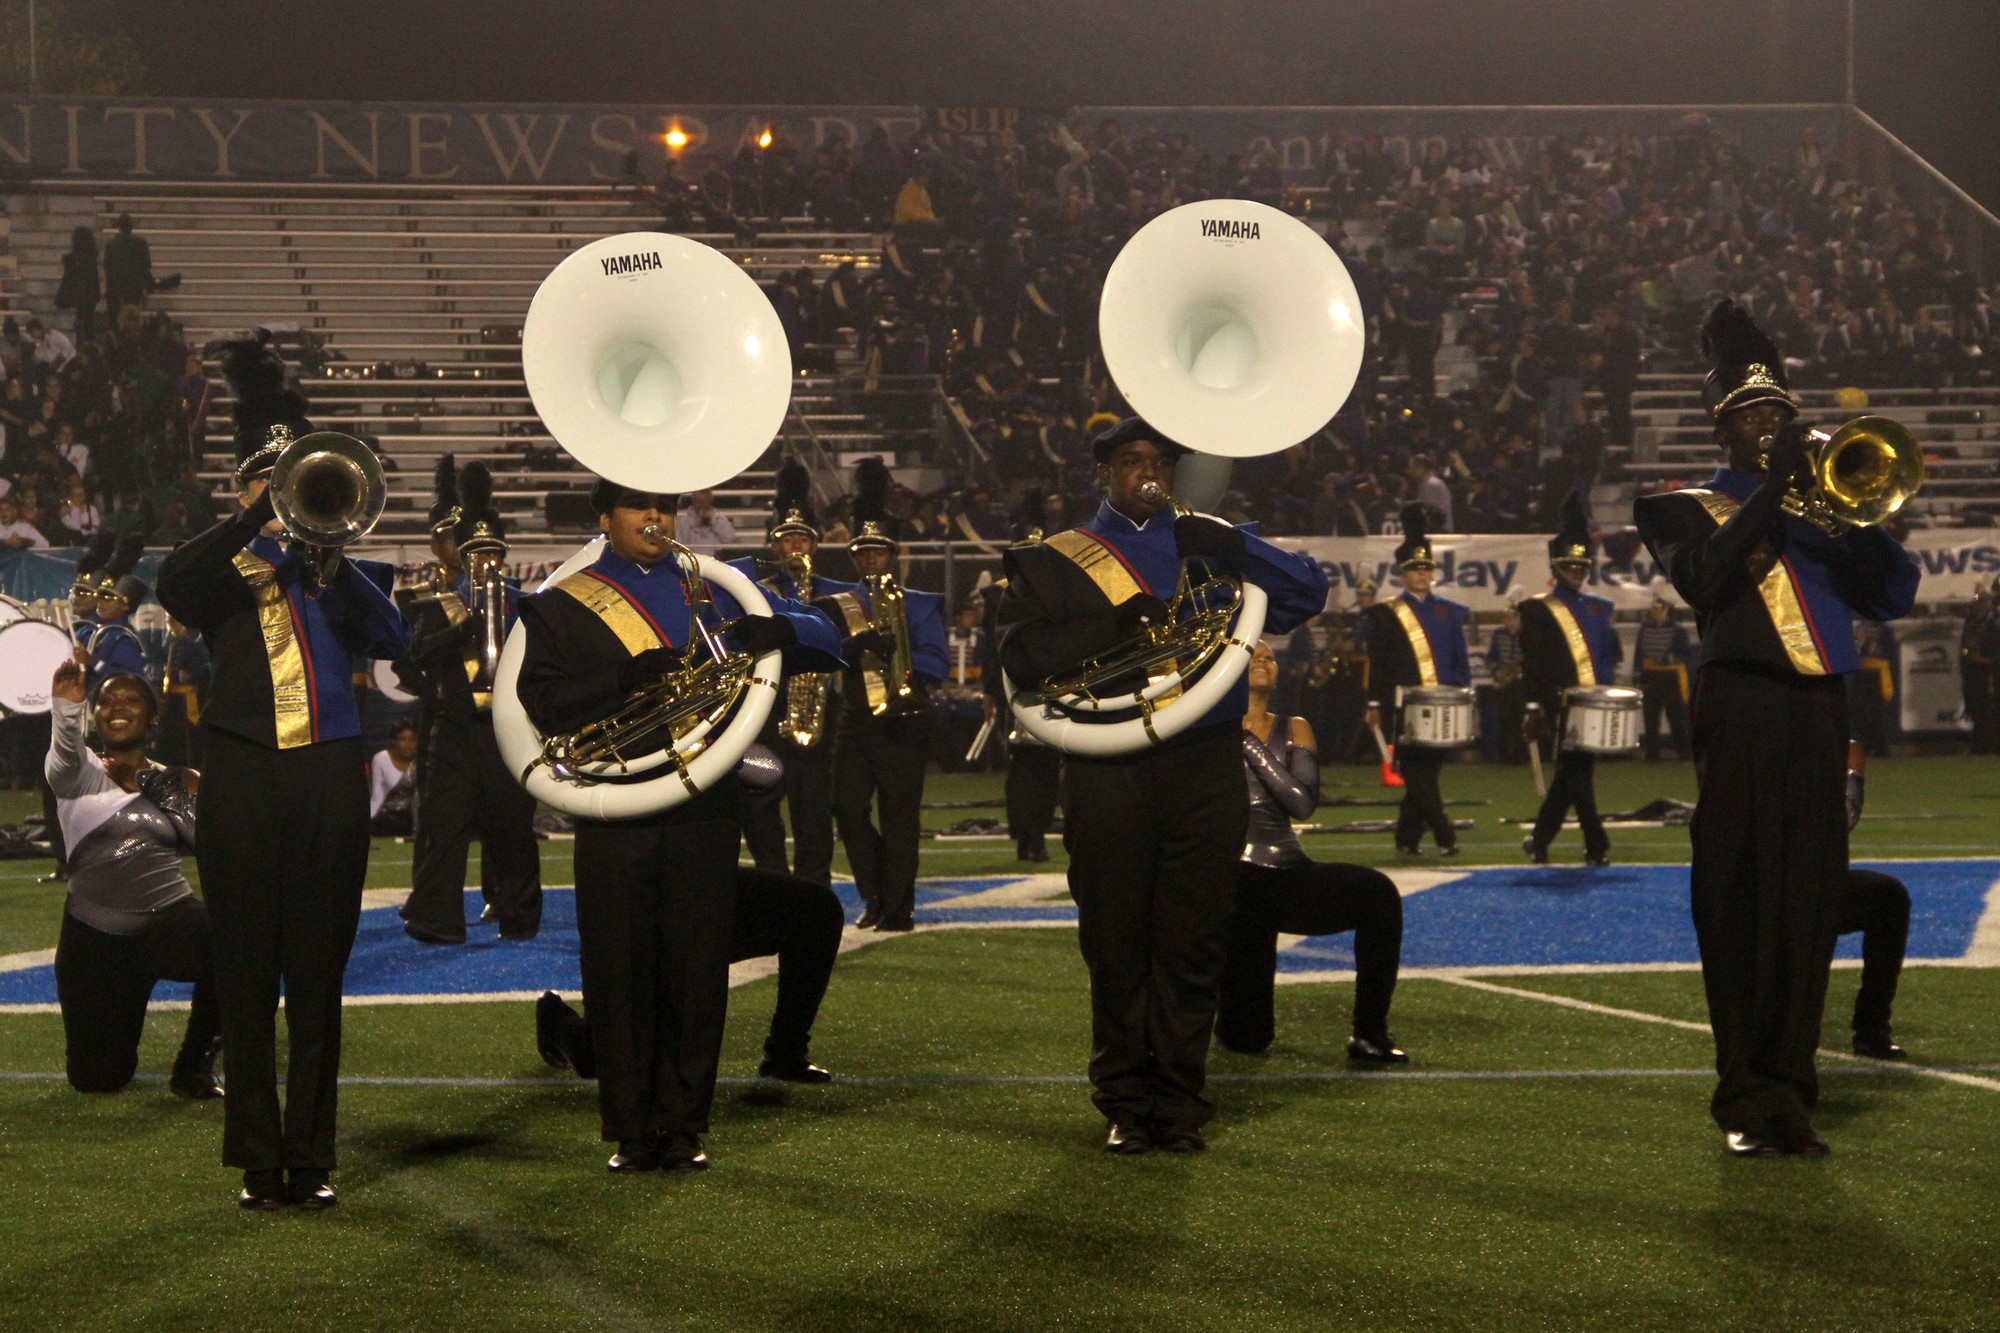 The Malverne High School Marching Band brought down the house at the Newsday Marching Band Festival at Hofstra University on Oct. 16.